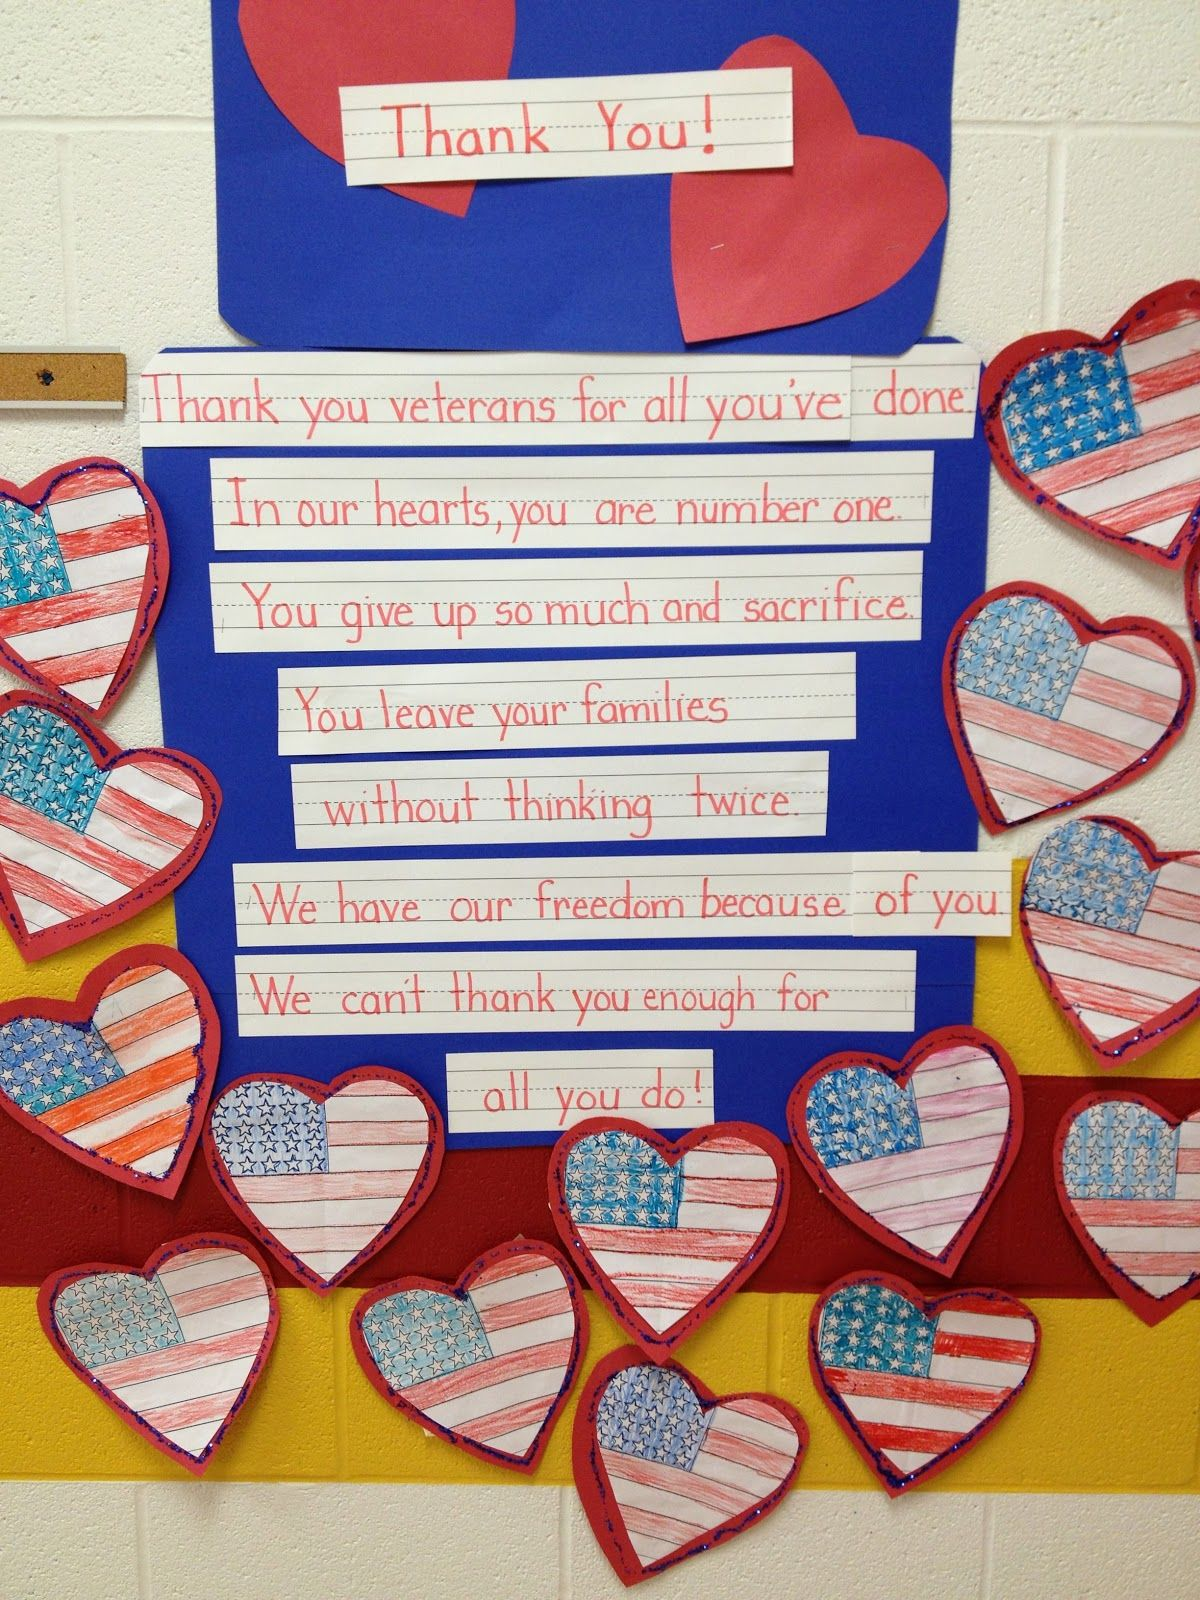 Nice Poem And Activity To Celebrate As A Class